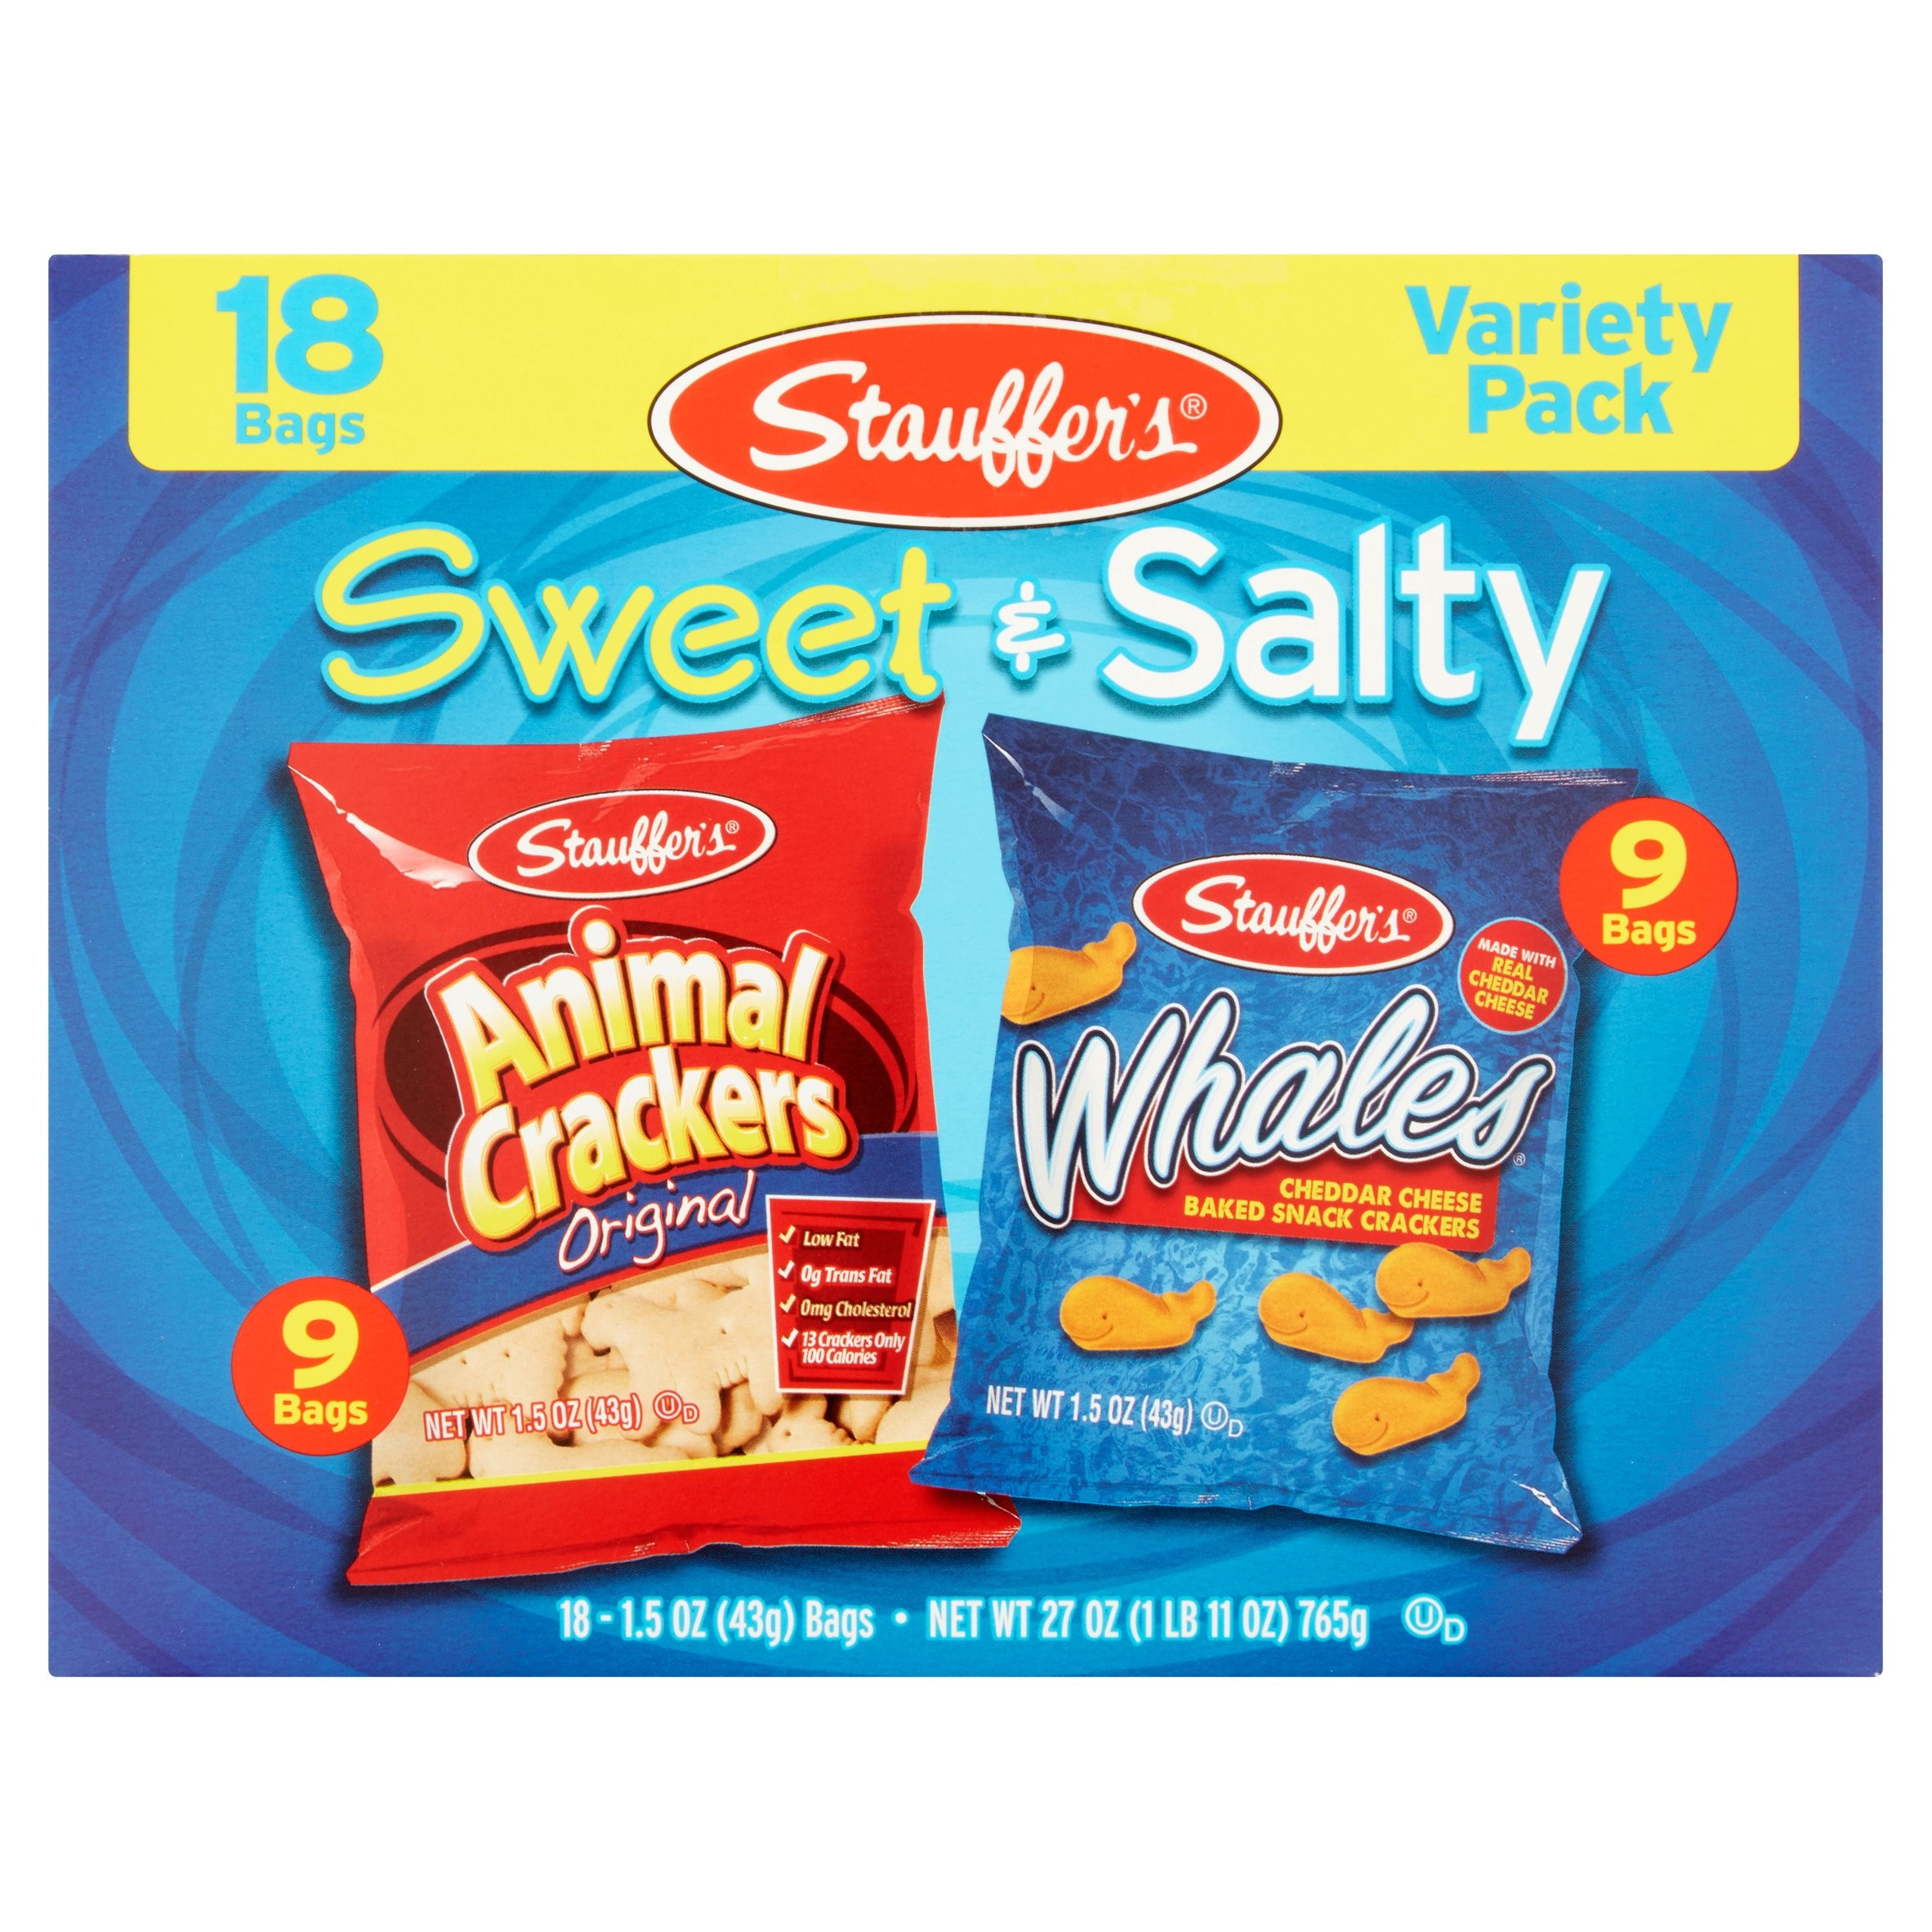 Stauffer's Original Animal Crackers & Whales Cheddar Cheese Crackers Sweet & Salty Variety Pack, 1.5 Oz., 18 Count